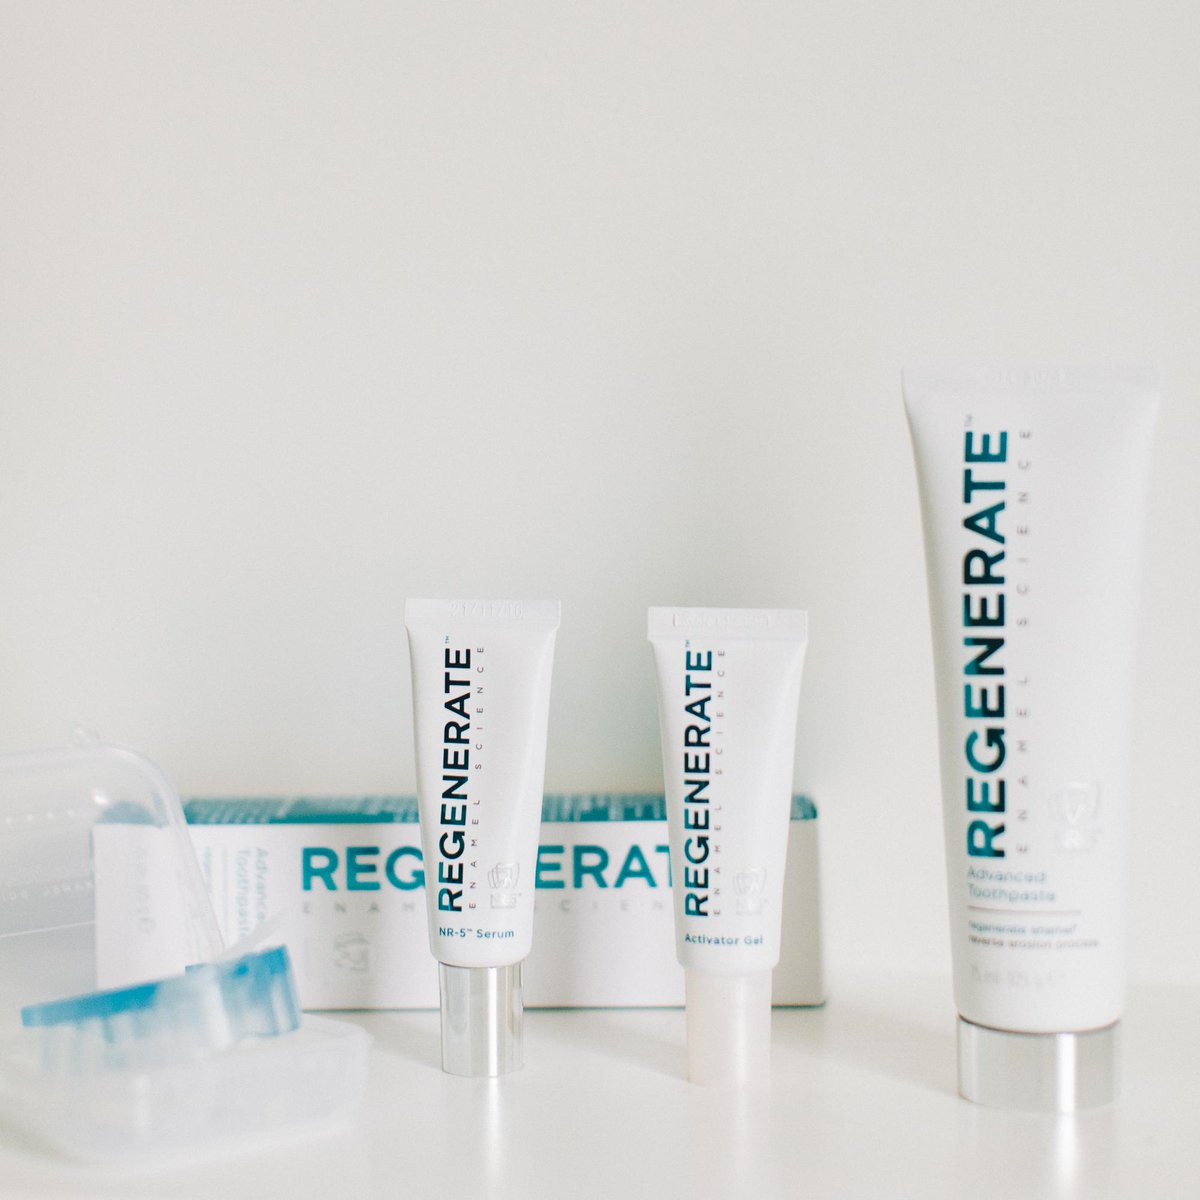 REGENERATE your smile for your big day with a chance to win this tooth care kit. RT & follow @Regenerate_UK to enter. http://t.co/HkAUsw79n6